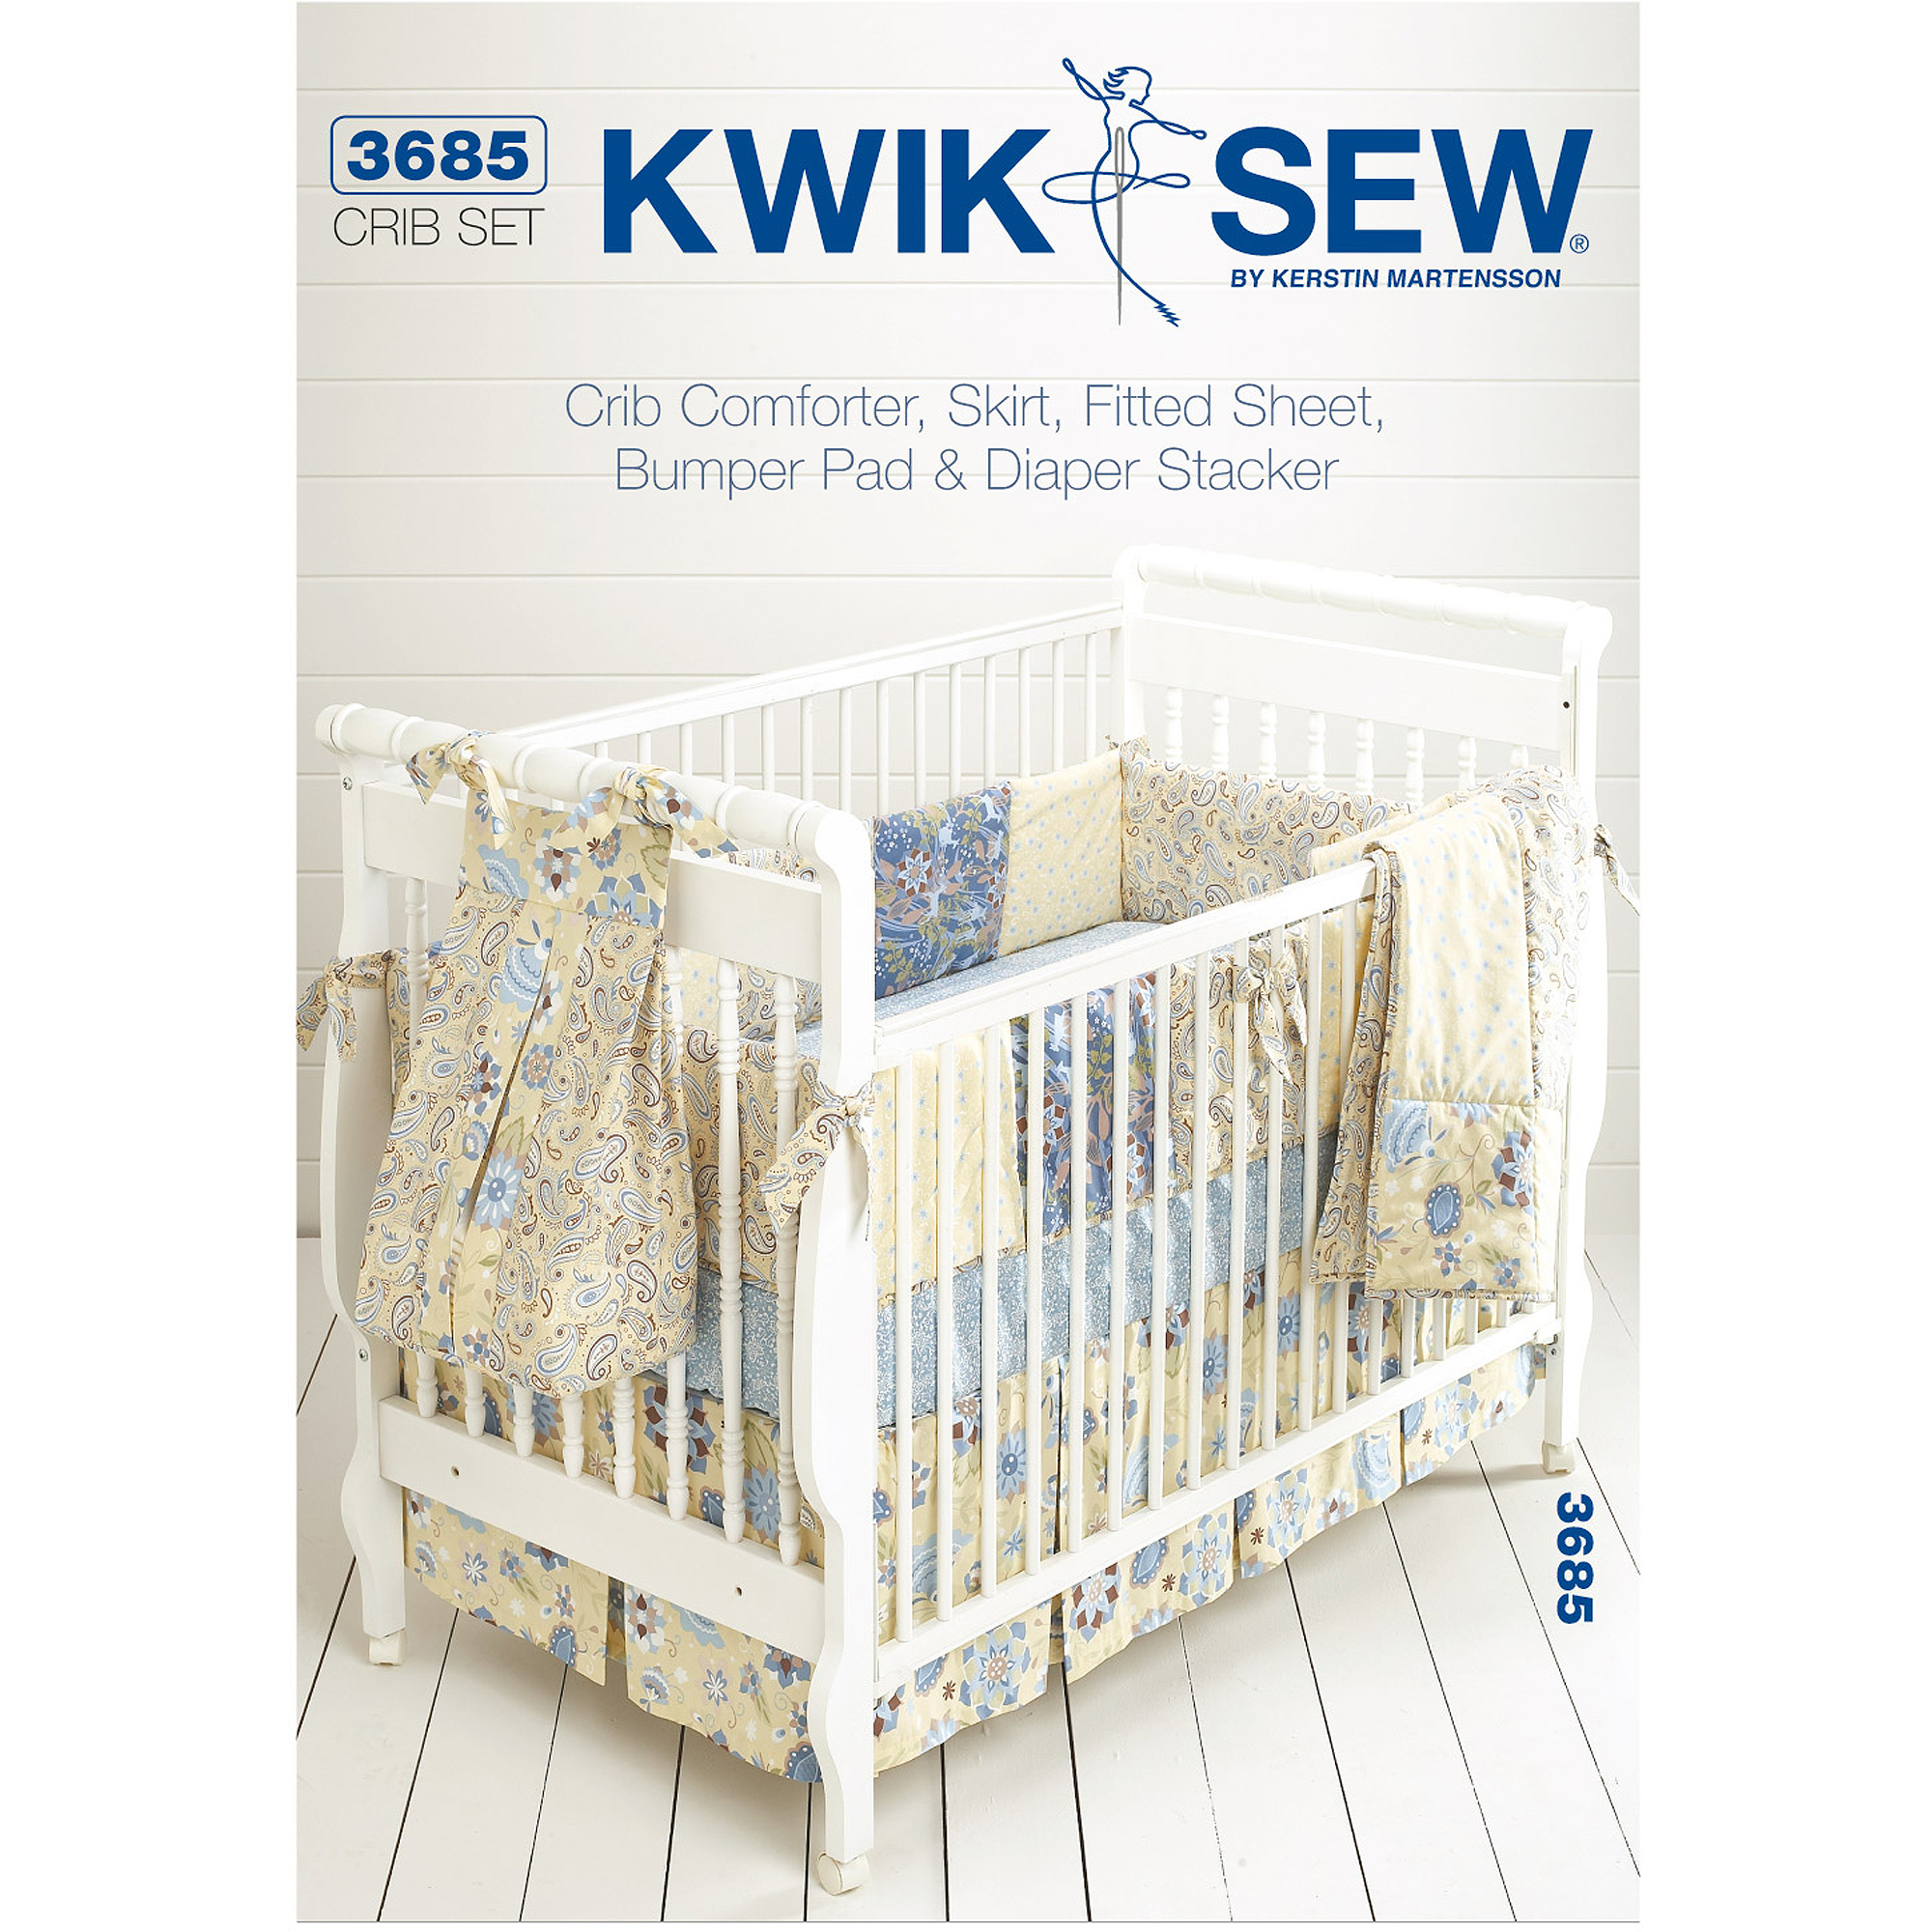 Bed sheet patterns for sewing - Kwik Sew Pattern Crib Comforter Skirt Fitted Sheet Bumper Pad And Diaper Stand Fits Cribs 28 X 52 Walmart Com